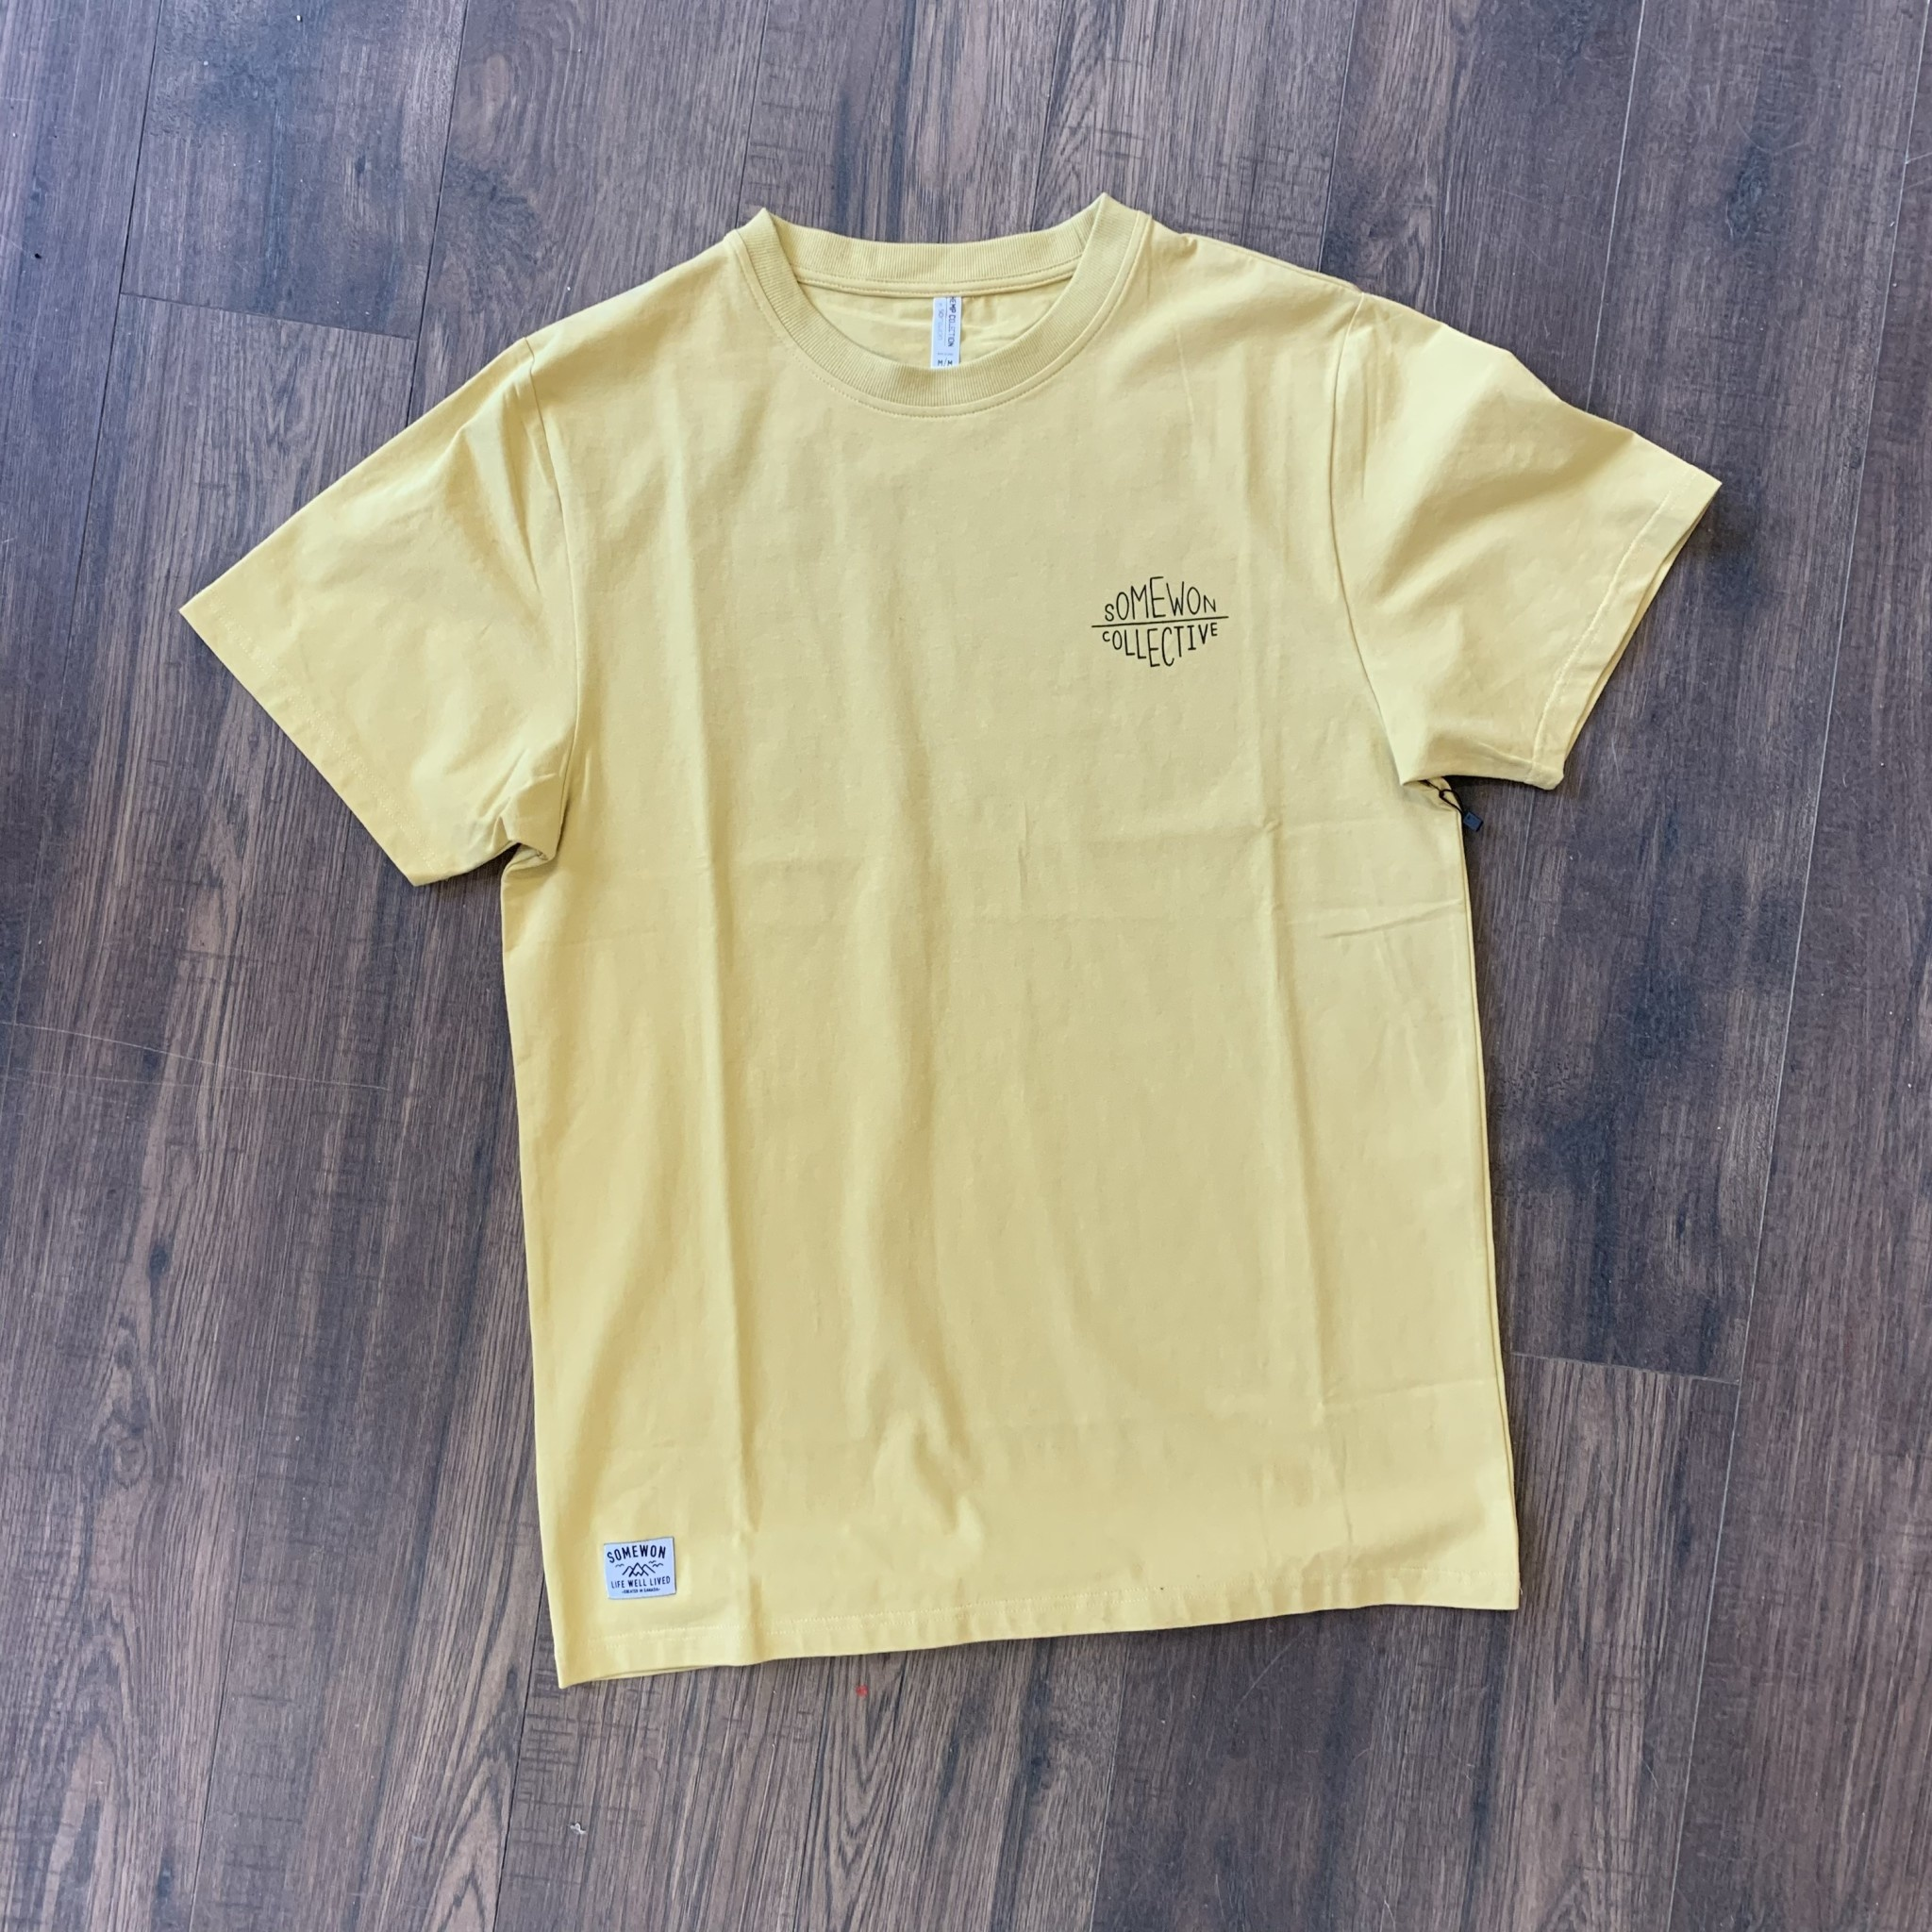 Somewon Collective SomewonCollective - Classic Tee